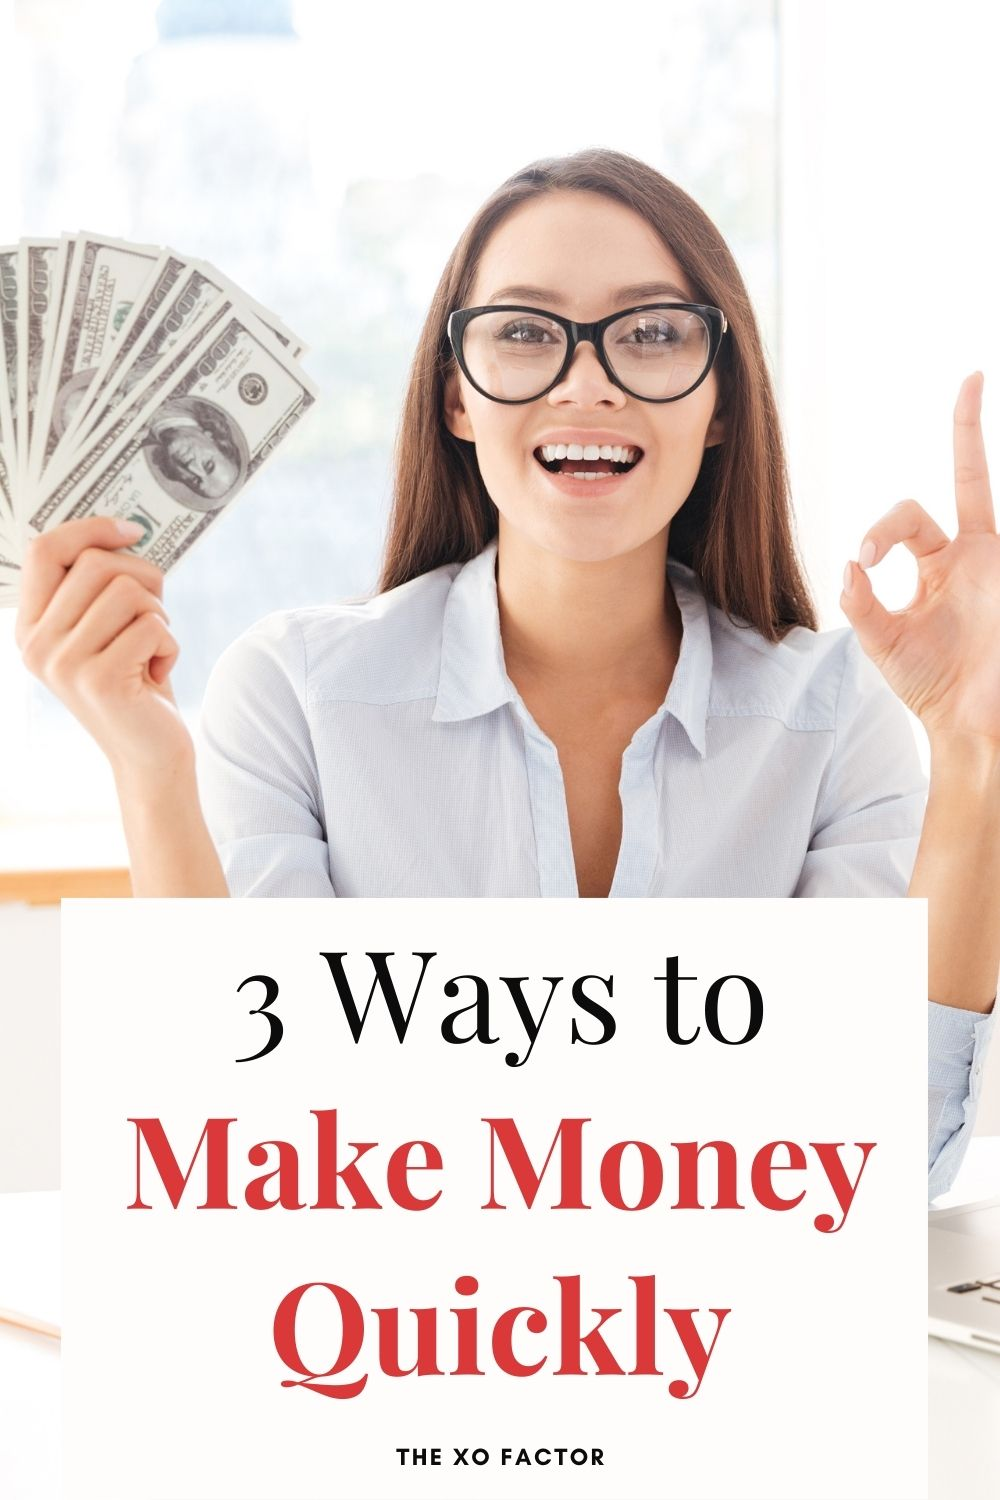 3 ways to make money quickly